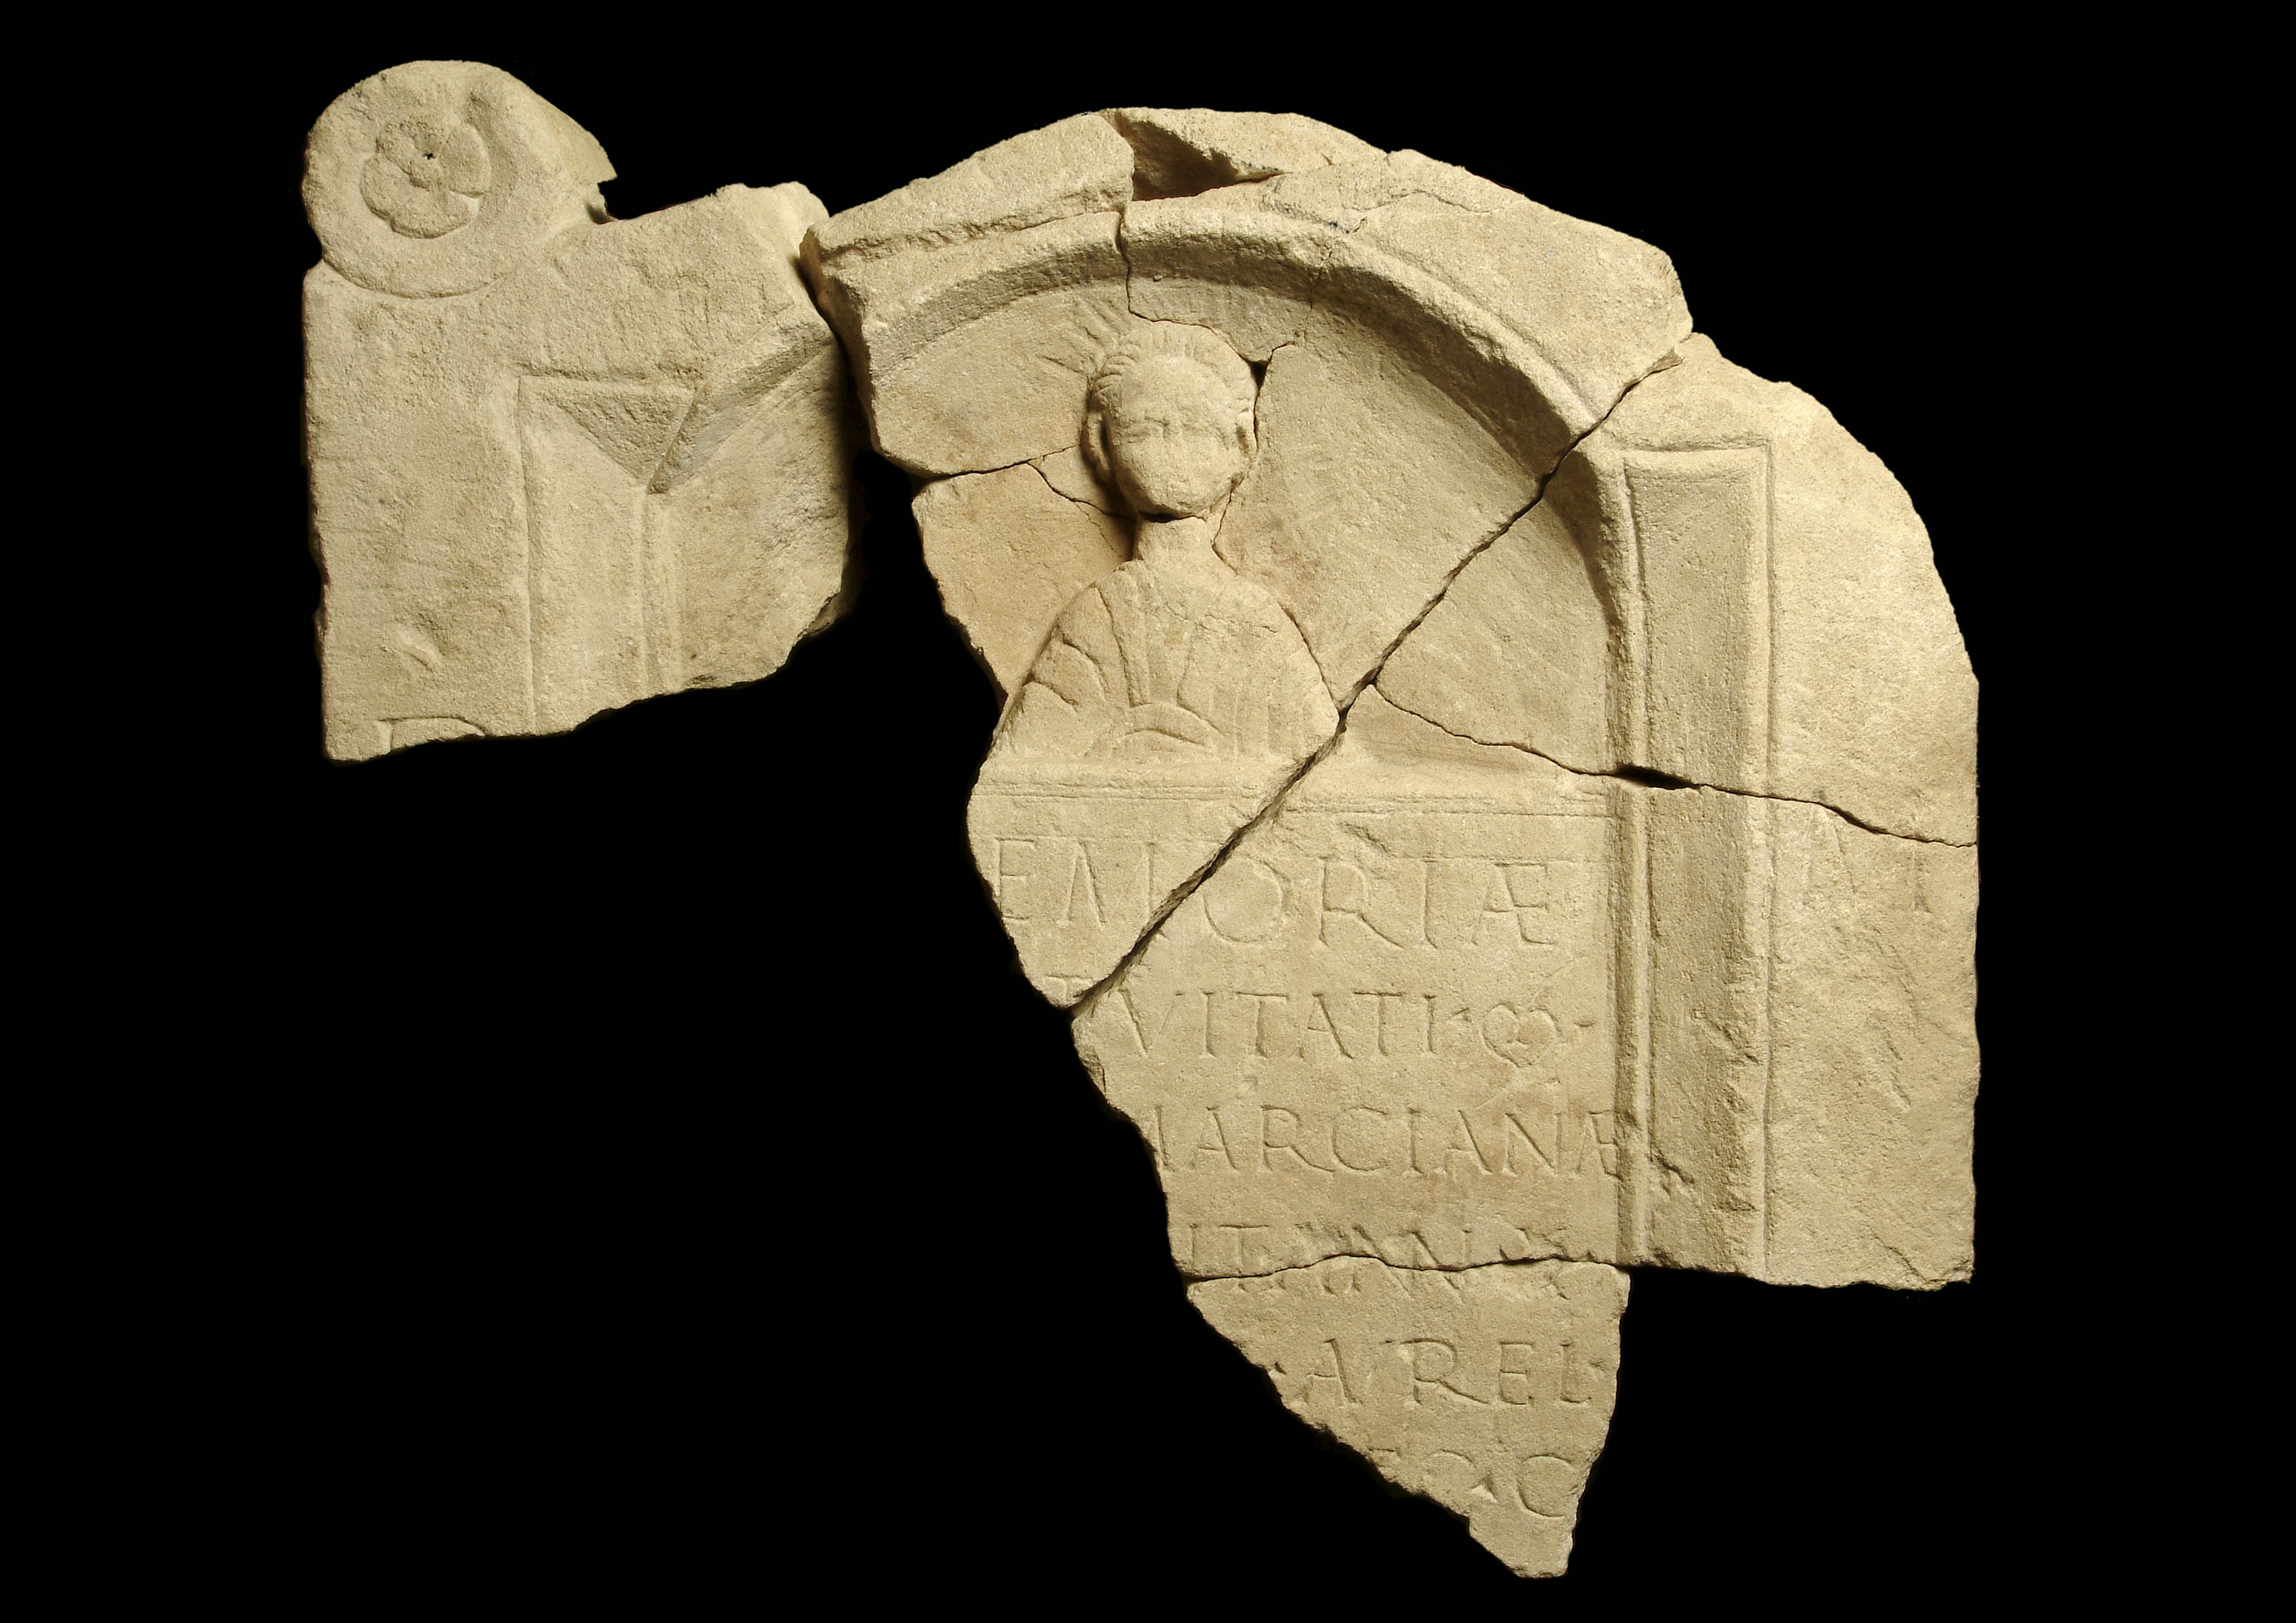 A tombstone of a 10-year-old girl, Marciana. It was found during excavations of the city wall in 1979, which revealed that the wall was partly composed of reused monumental masonry including fragments of tombstones. The tombstone has an inscription beneath Marciana's bust and a D M on the border of the stone. (© Museum of London)